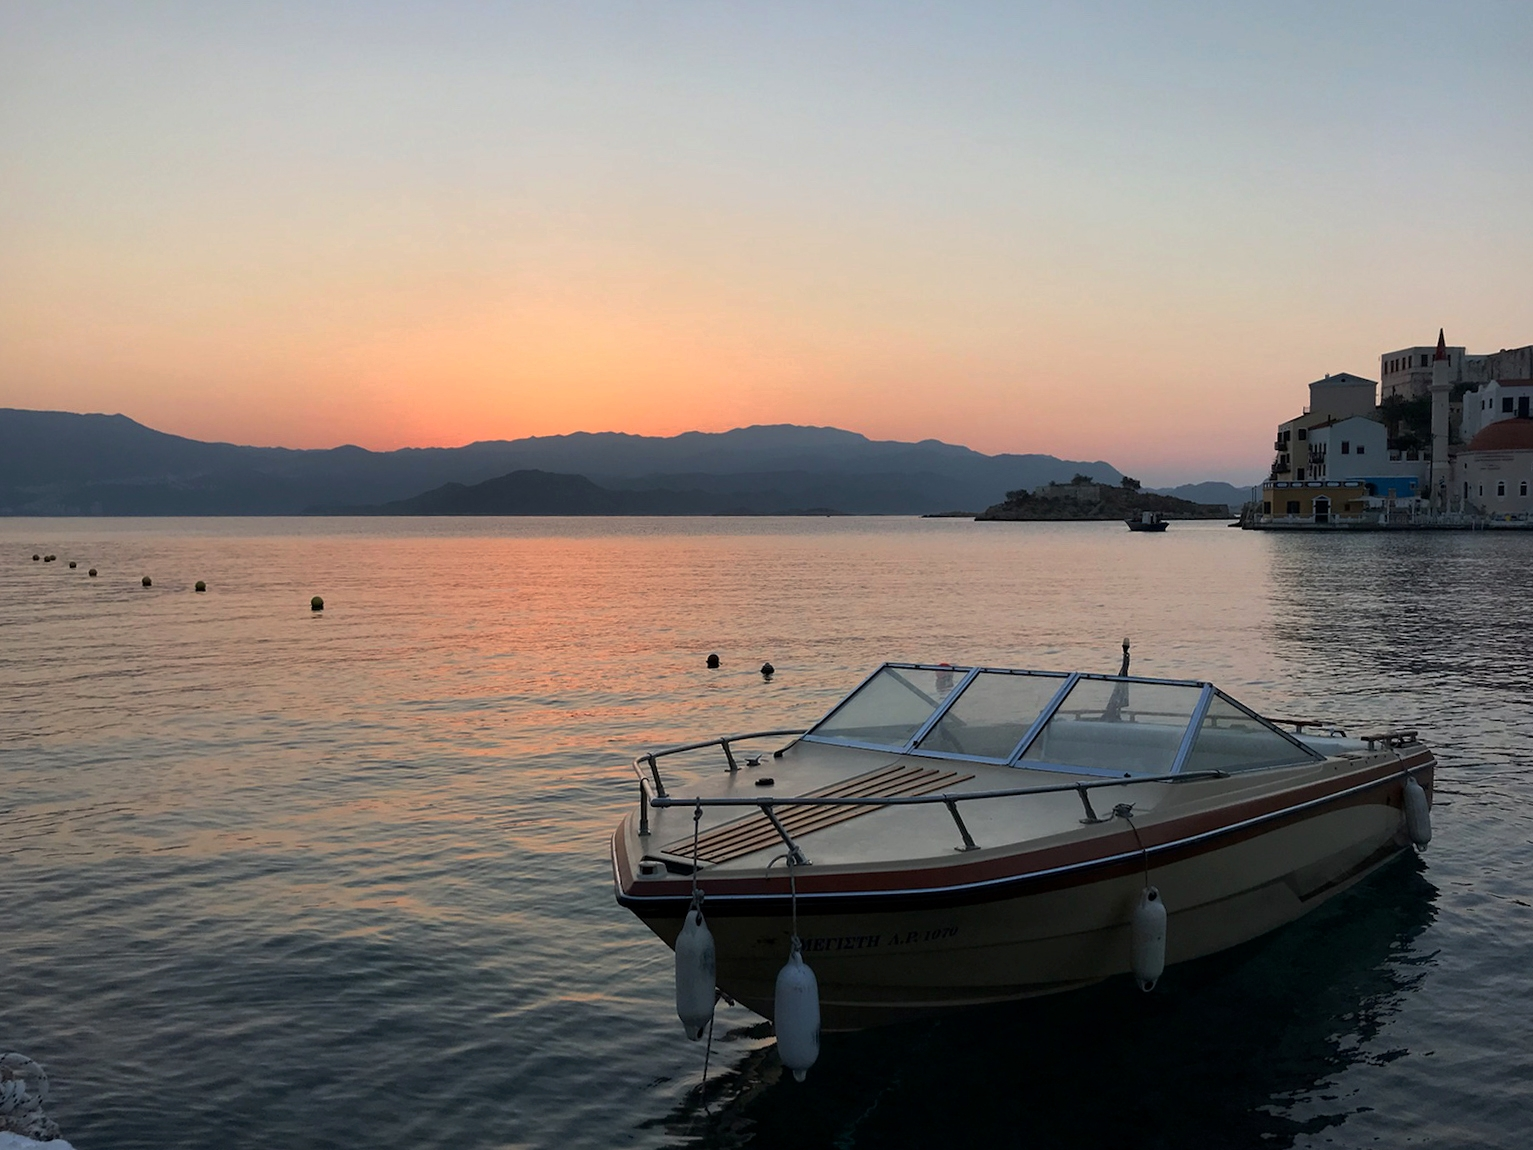 A small speedboat is anchored on tranquil waters as the sun sets behind the mountains